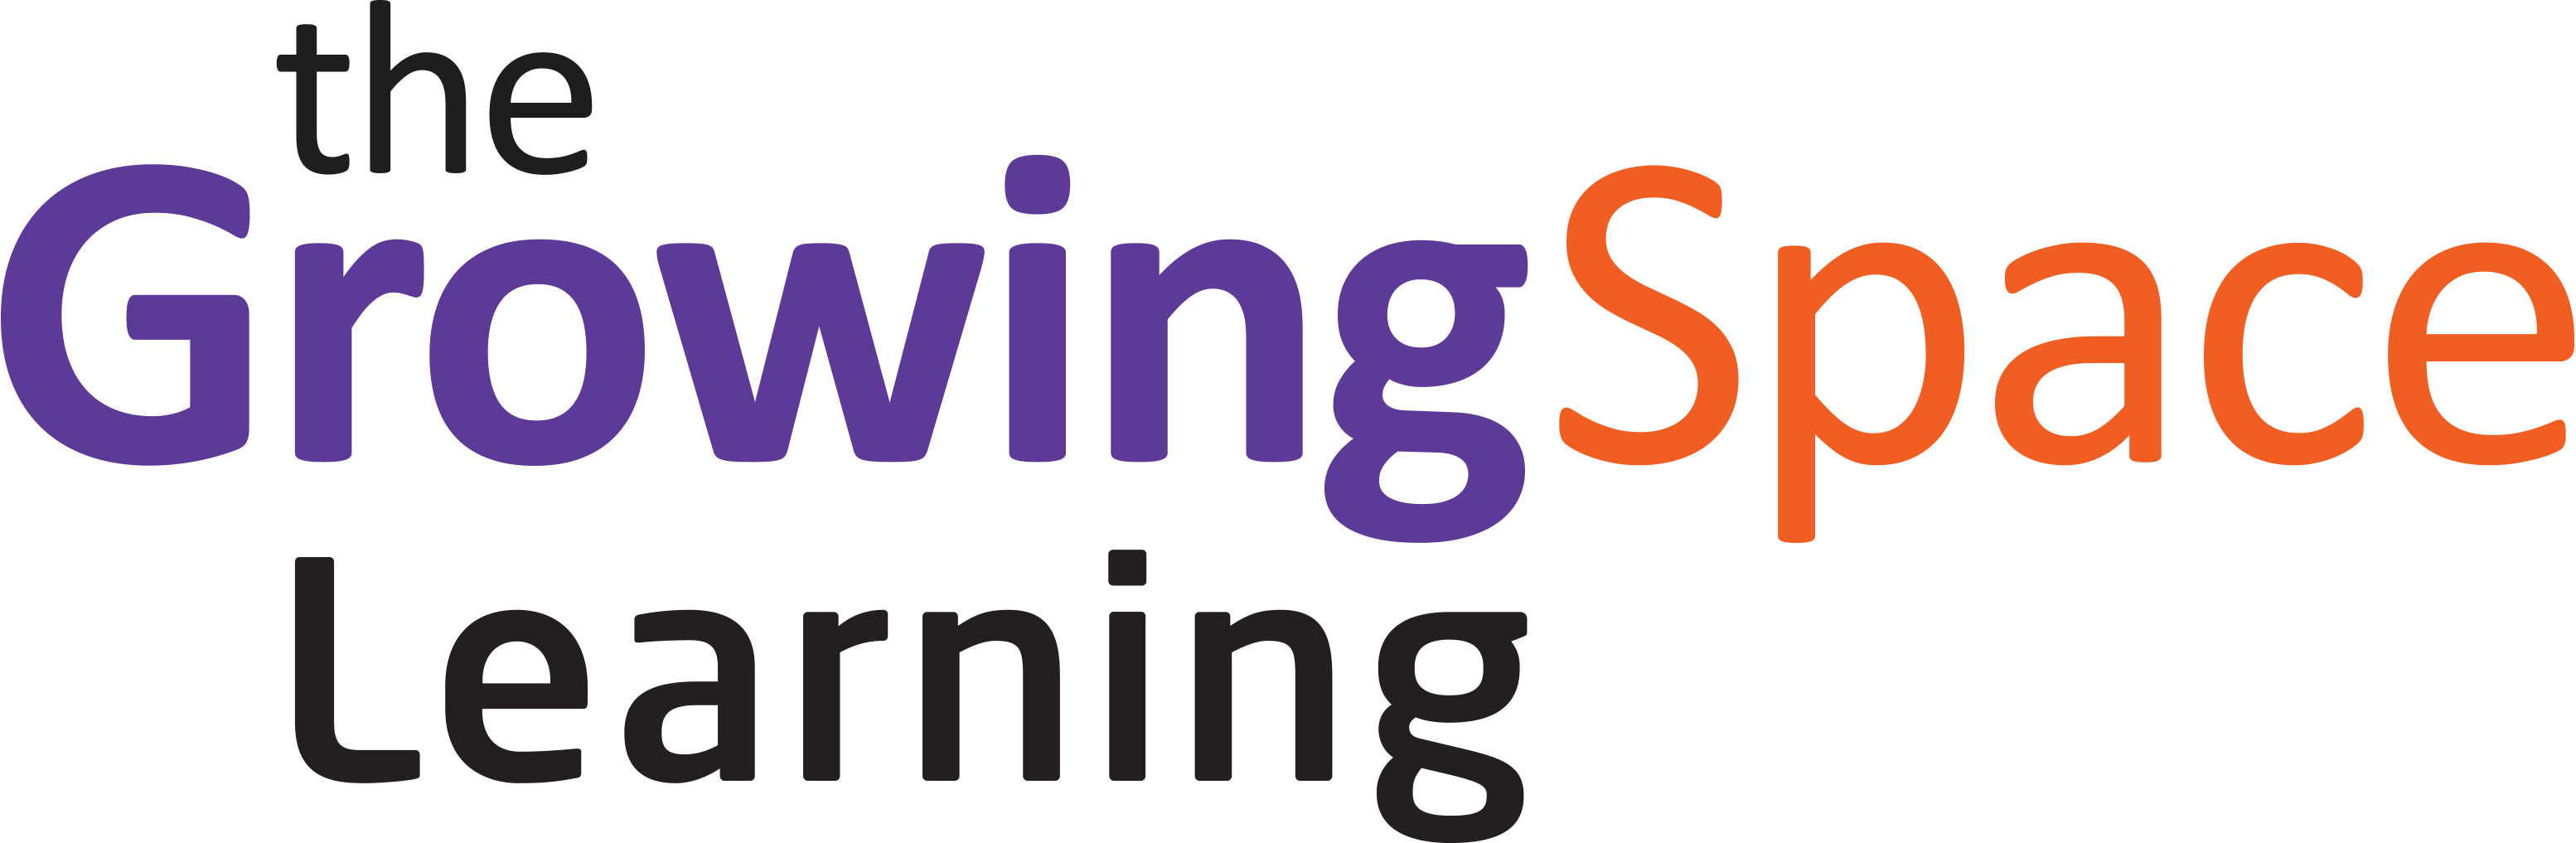 Image of growing space learning logo